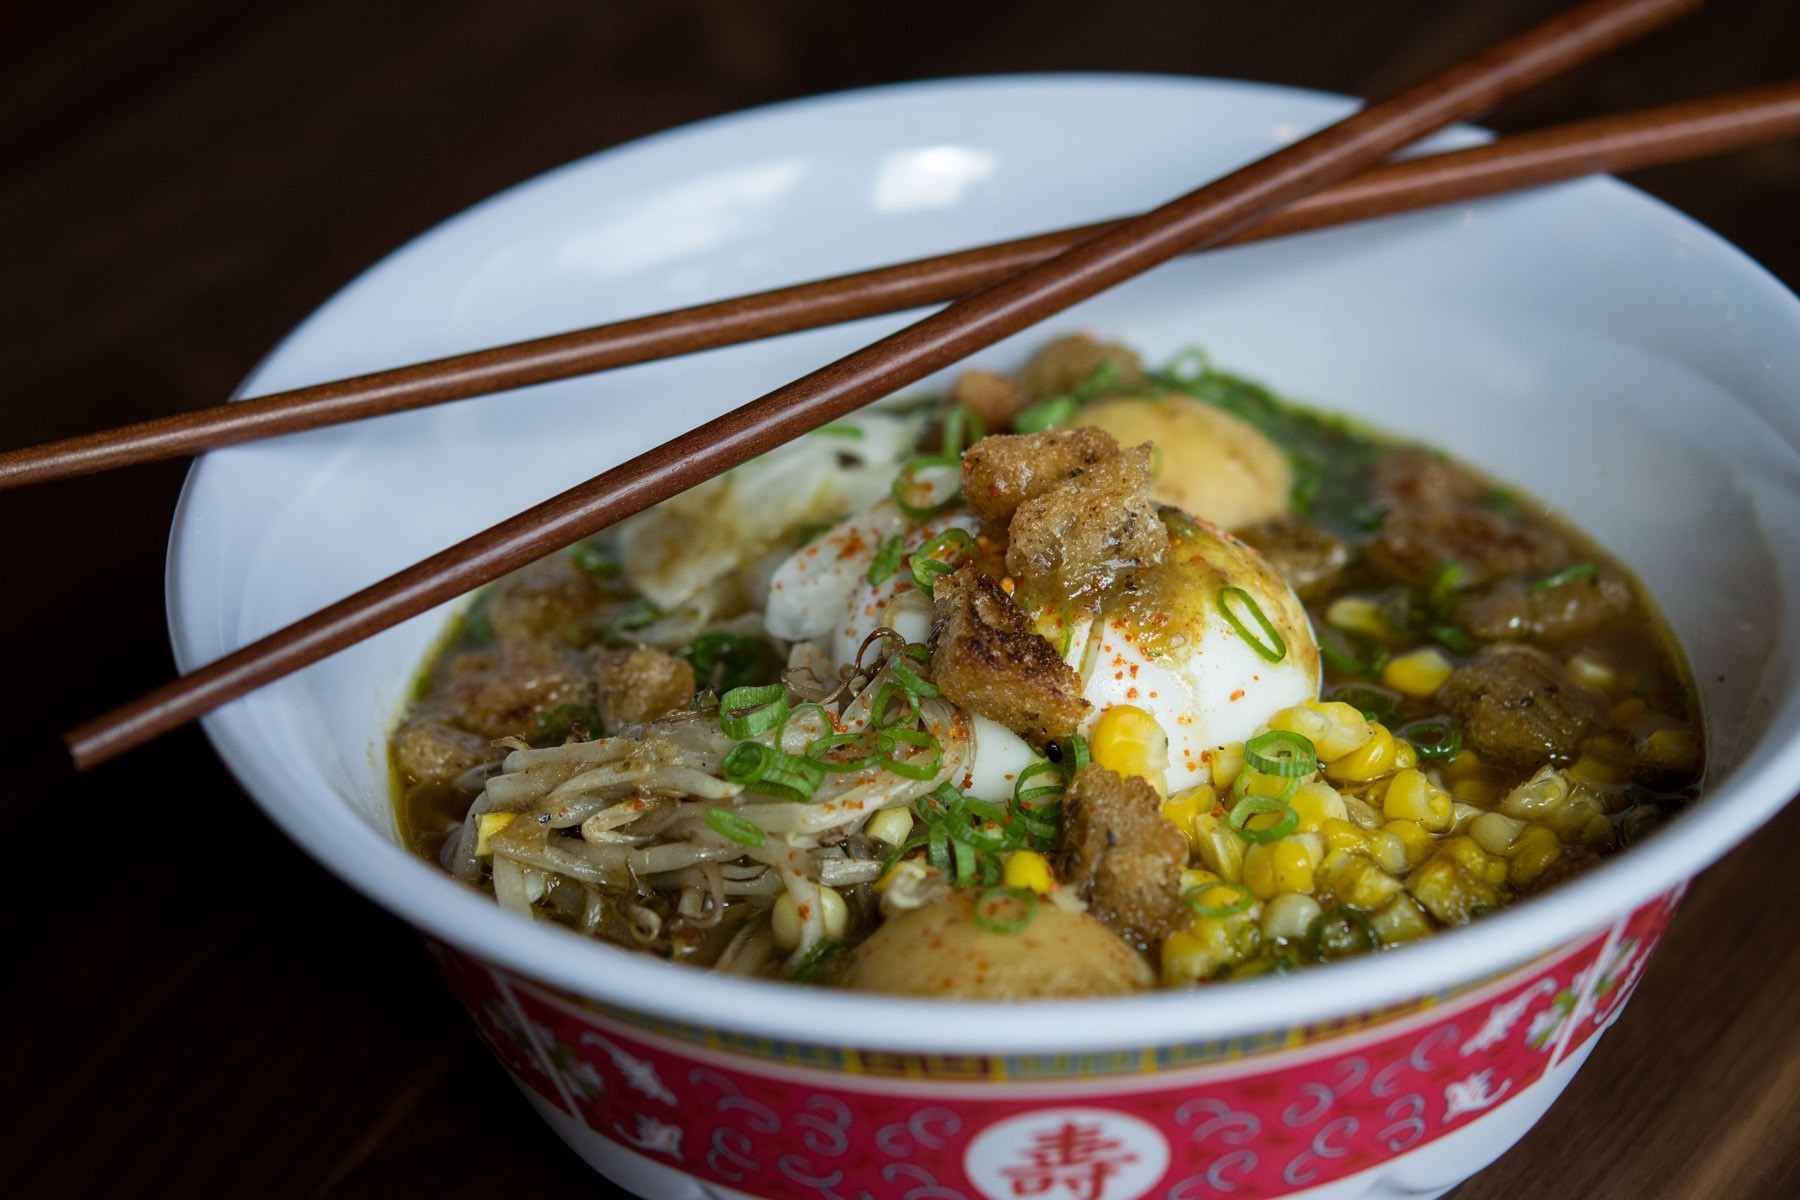 Matzo ball ramen with chicken broth, burnt onion, schmaltz tare, corn, and spicy chicken at Little Donkey. Photo by Andrea Merrill.